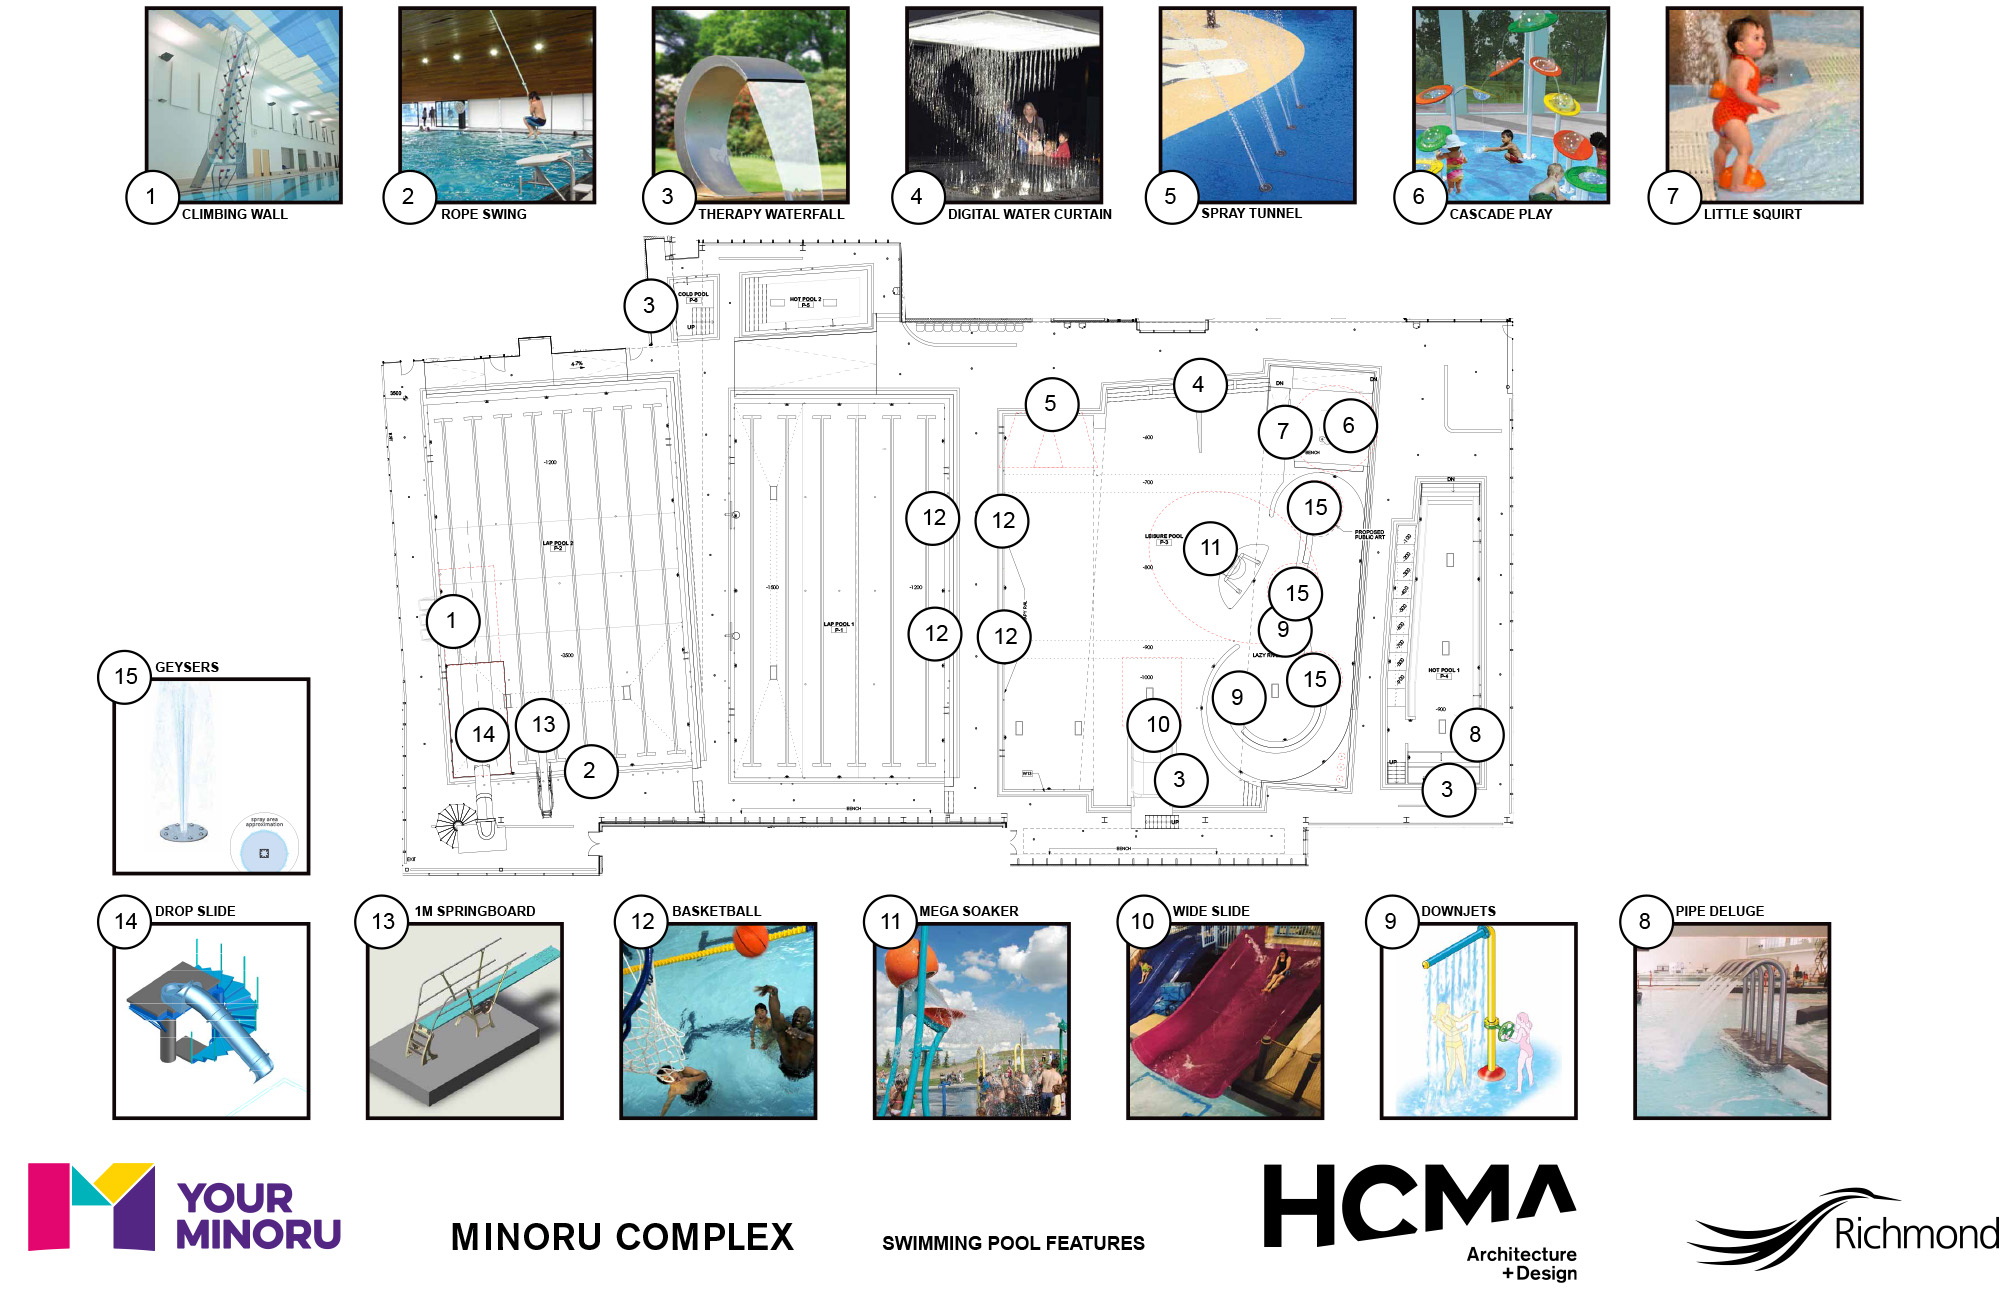 Minoru Complex - Swimming pool features - January 2016